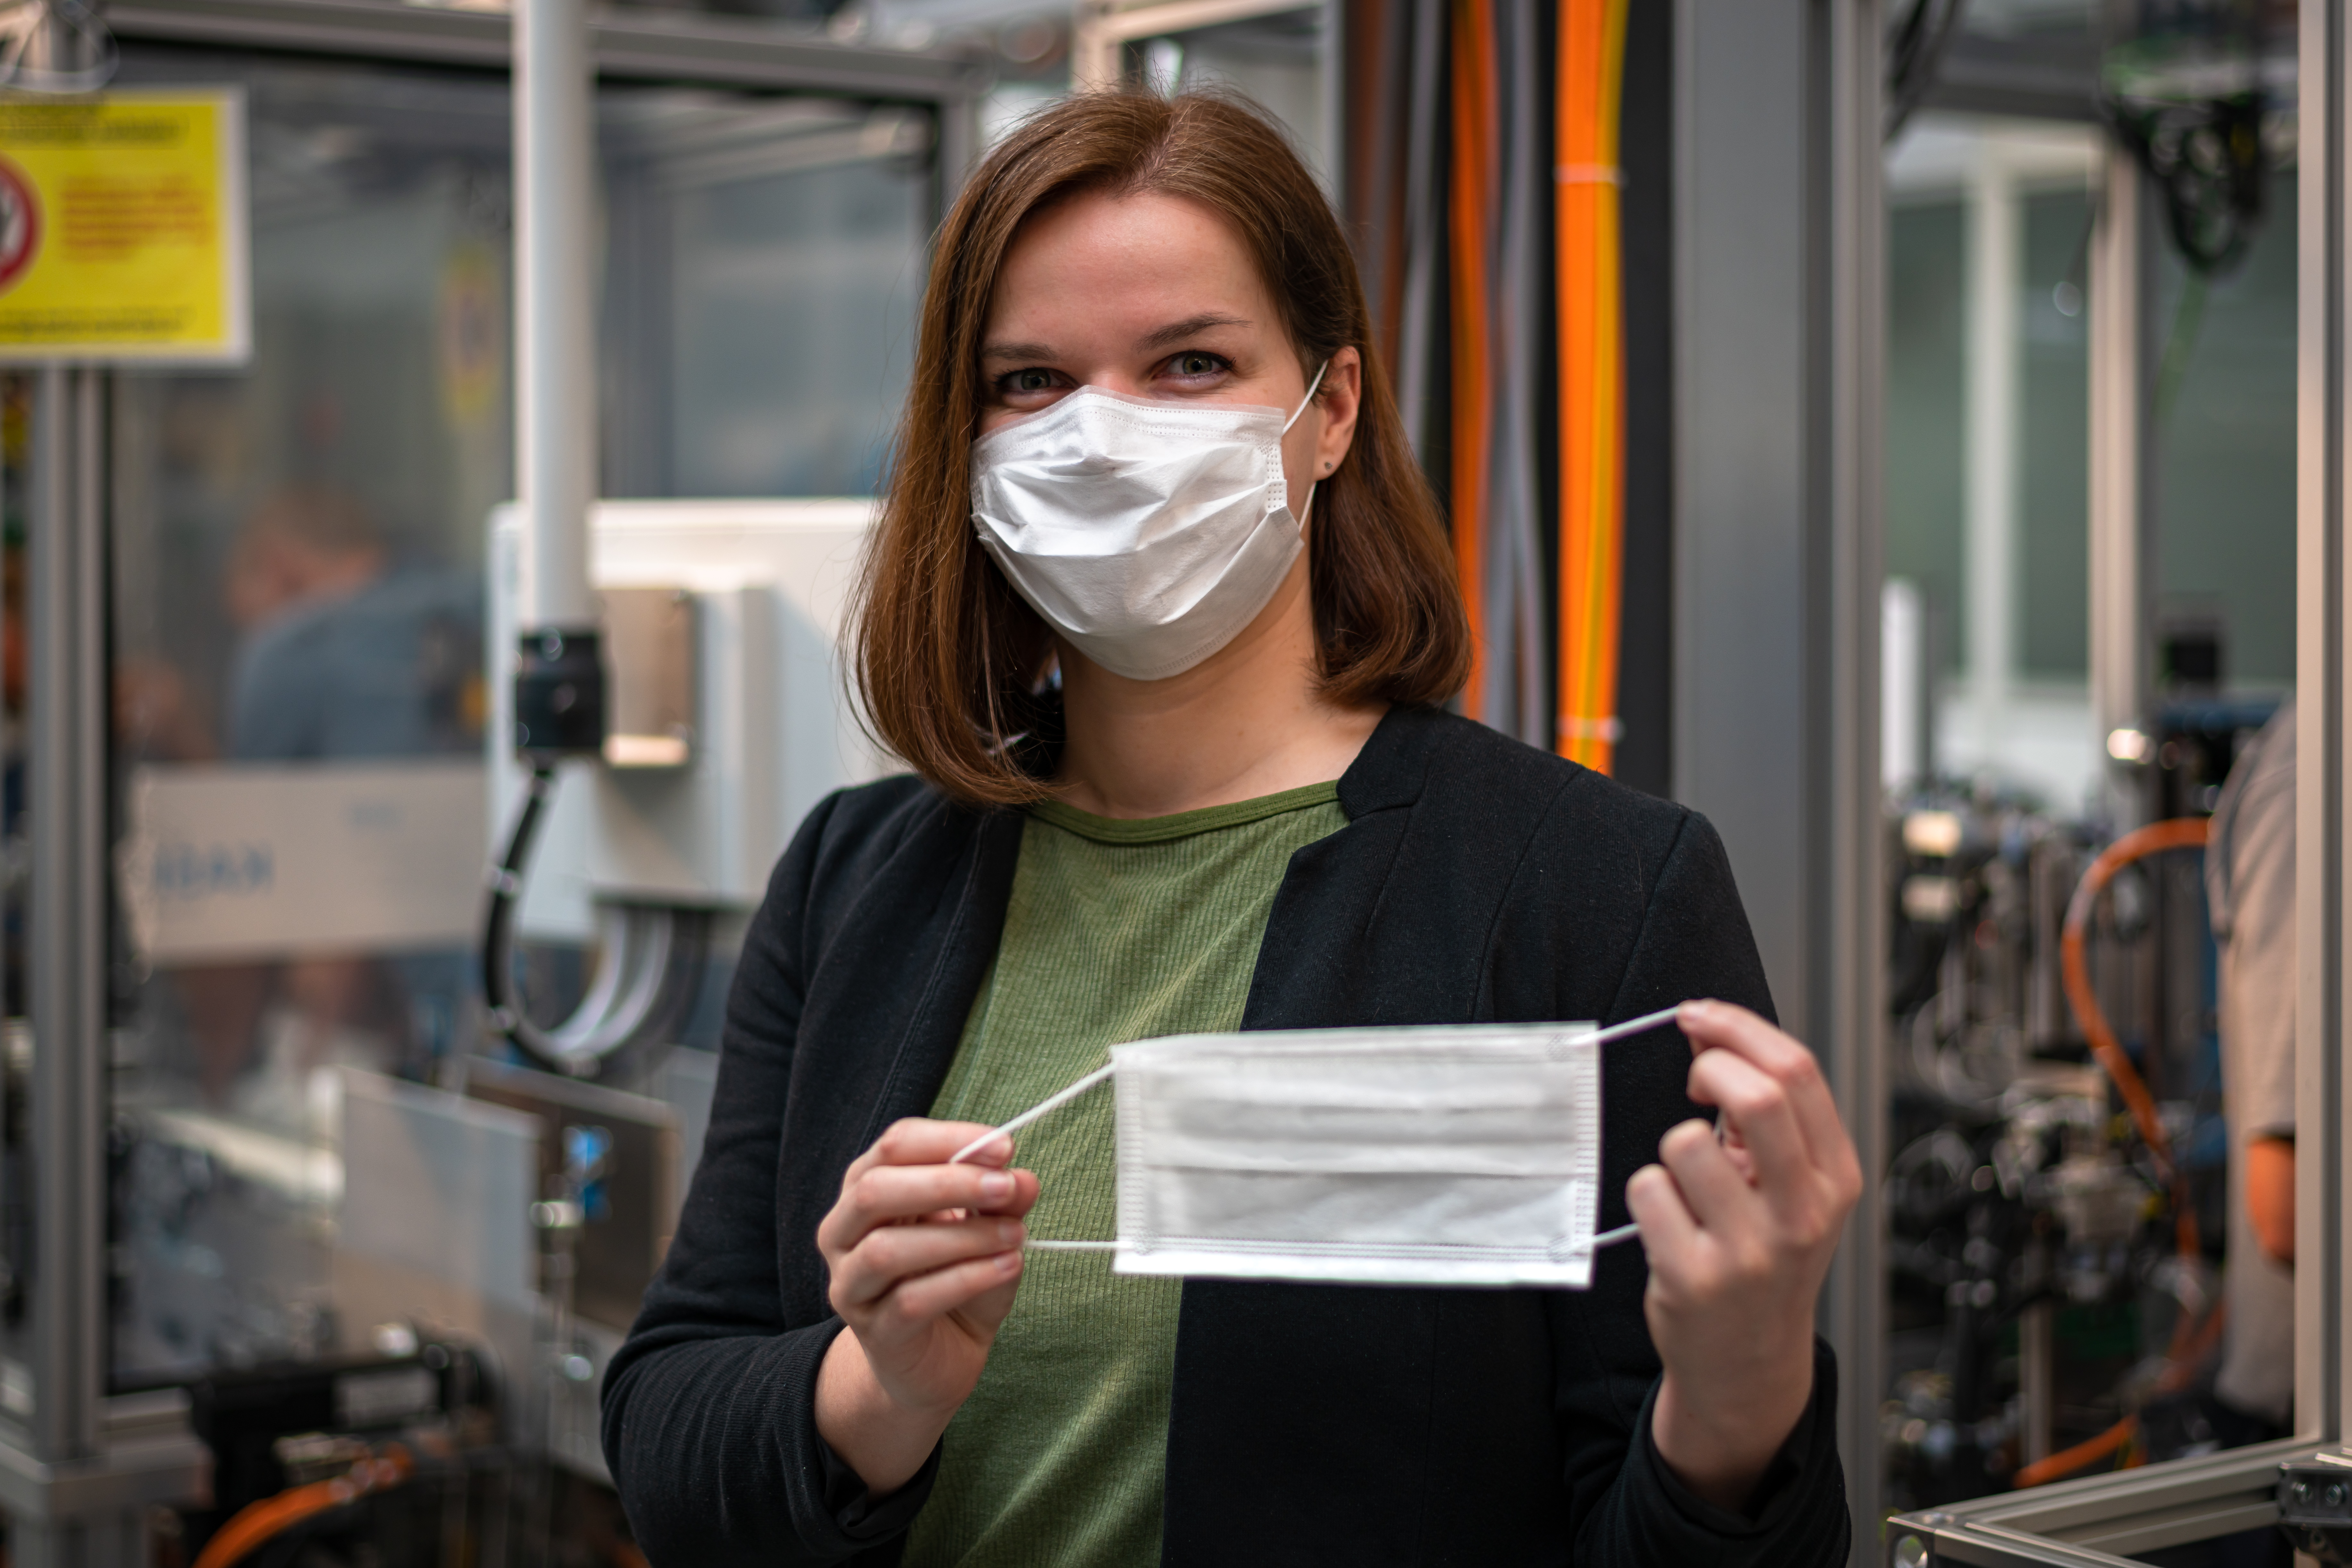 Helping contain the coronavirus pandemic: production of masks and disinfectant